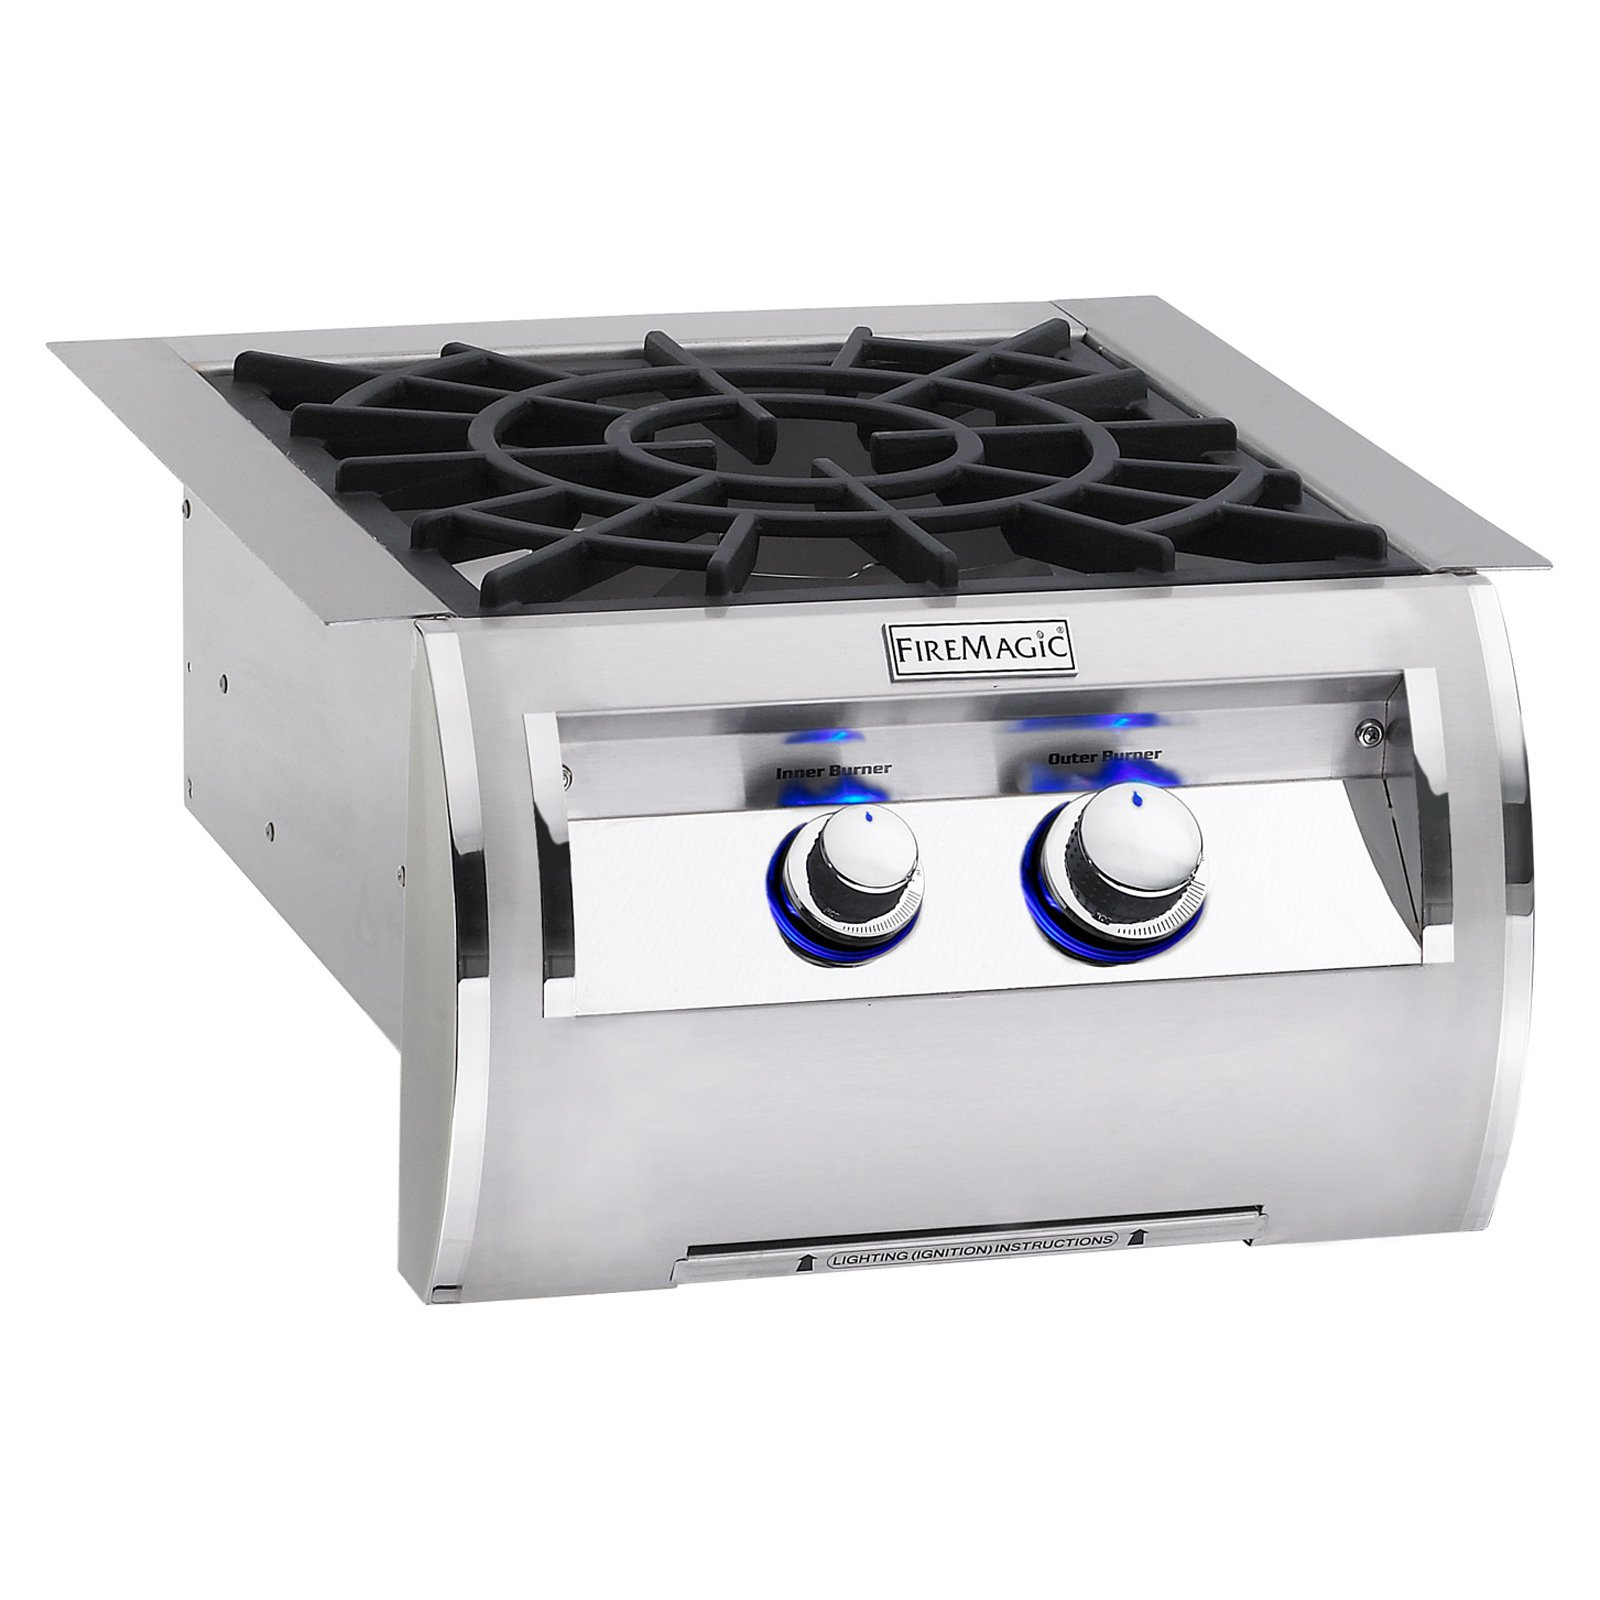 Fire Magic Echelon Diamond 19-4B2N-0 Built-In Power Burner